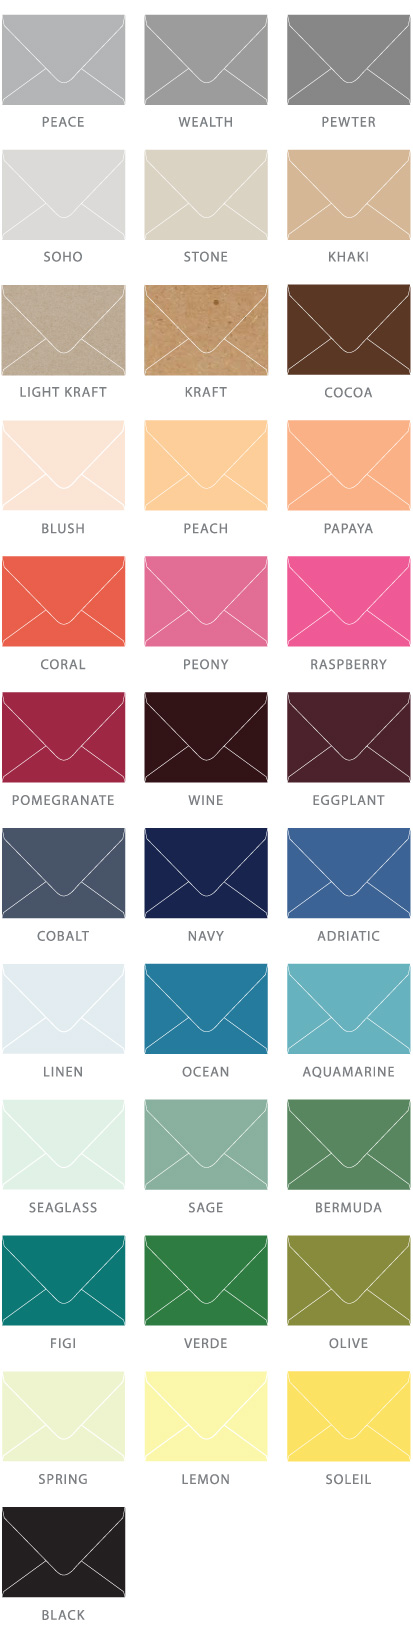 Colored Envelope Options | Over 30 options